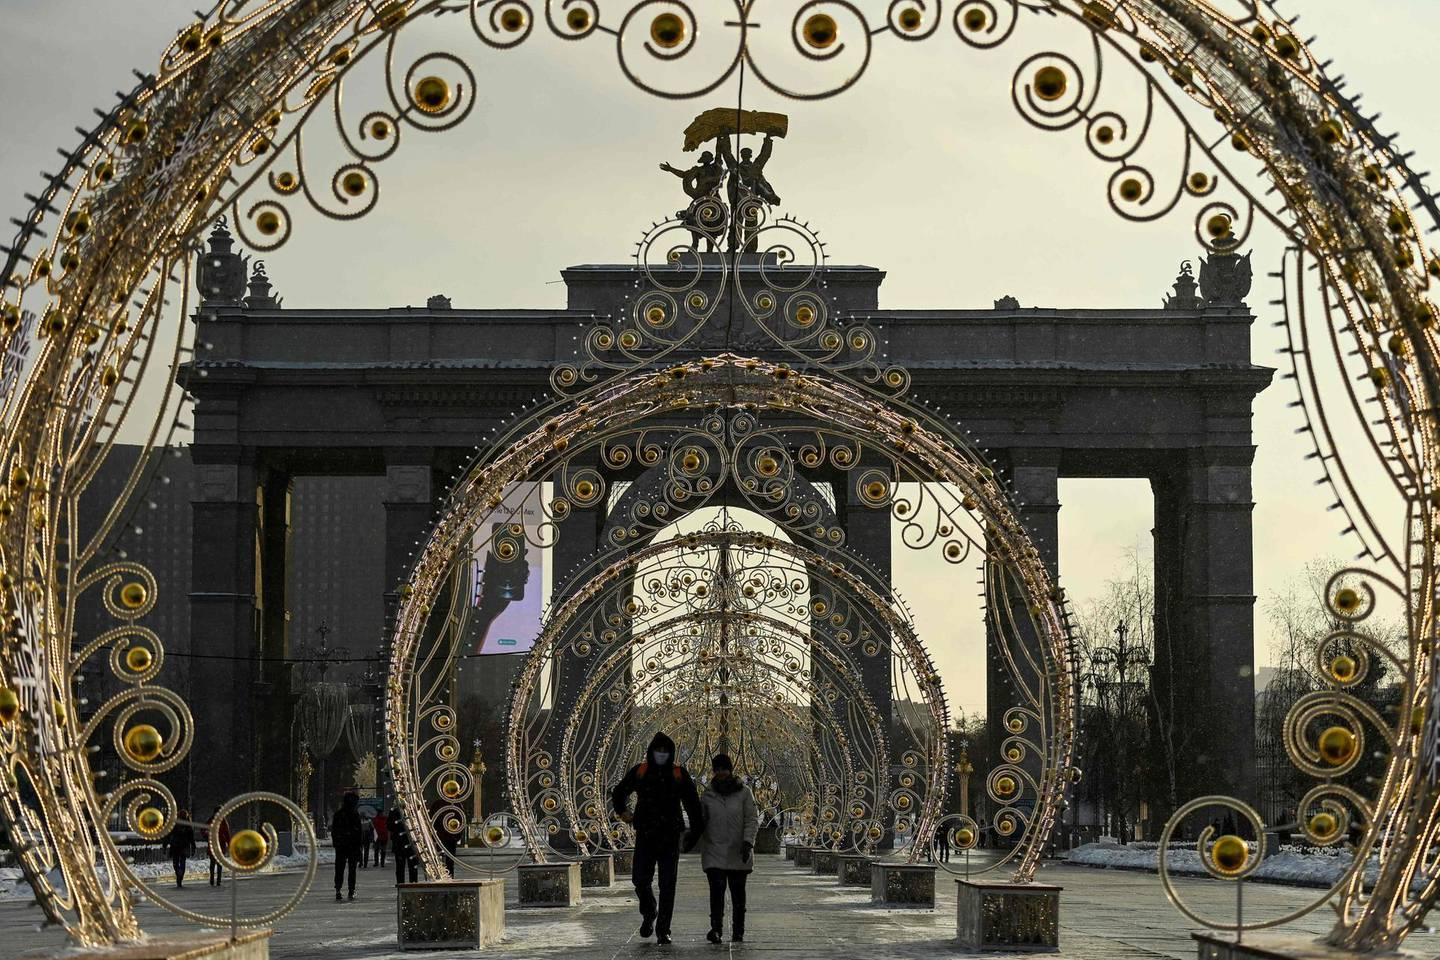 People wearing protective facemask walk past festive decorations set for Christmas and the upcoming New Year's celebrations, in Moscow on December 27, 2020, amid the ongoing Covid-19, (the novel coronavirus) pandemic. Russia confirmed 28,284 new Covid-19 cases on December 27. / AFP / Kirill KUDRYAVTSEV